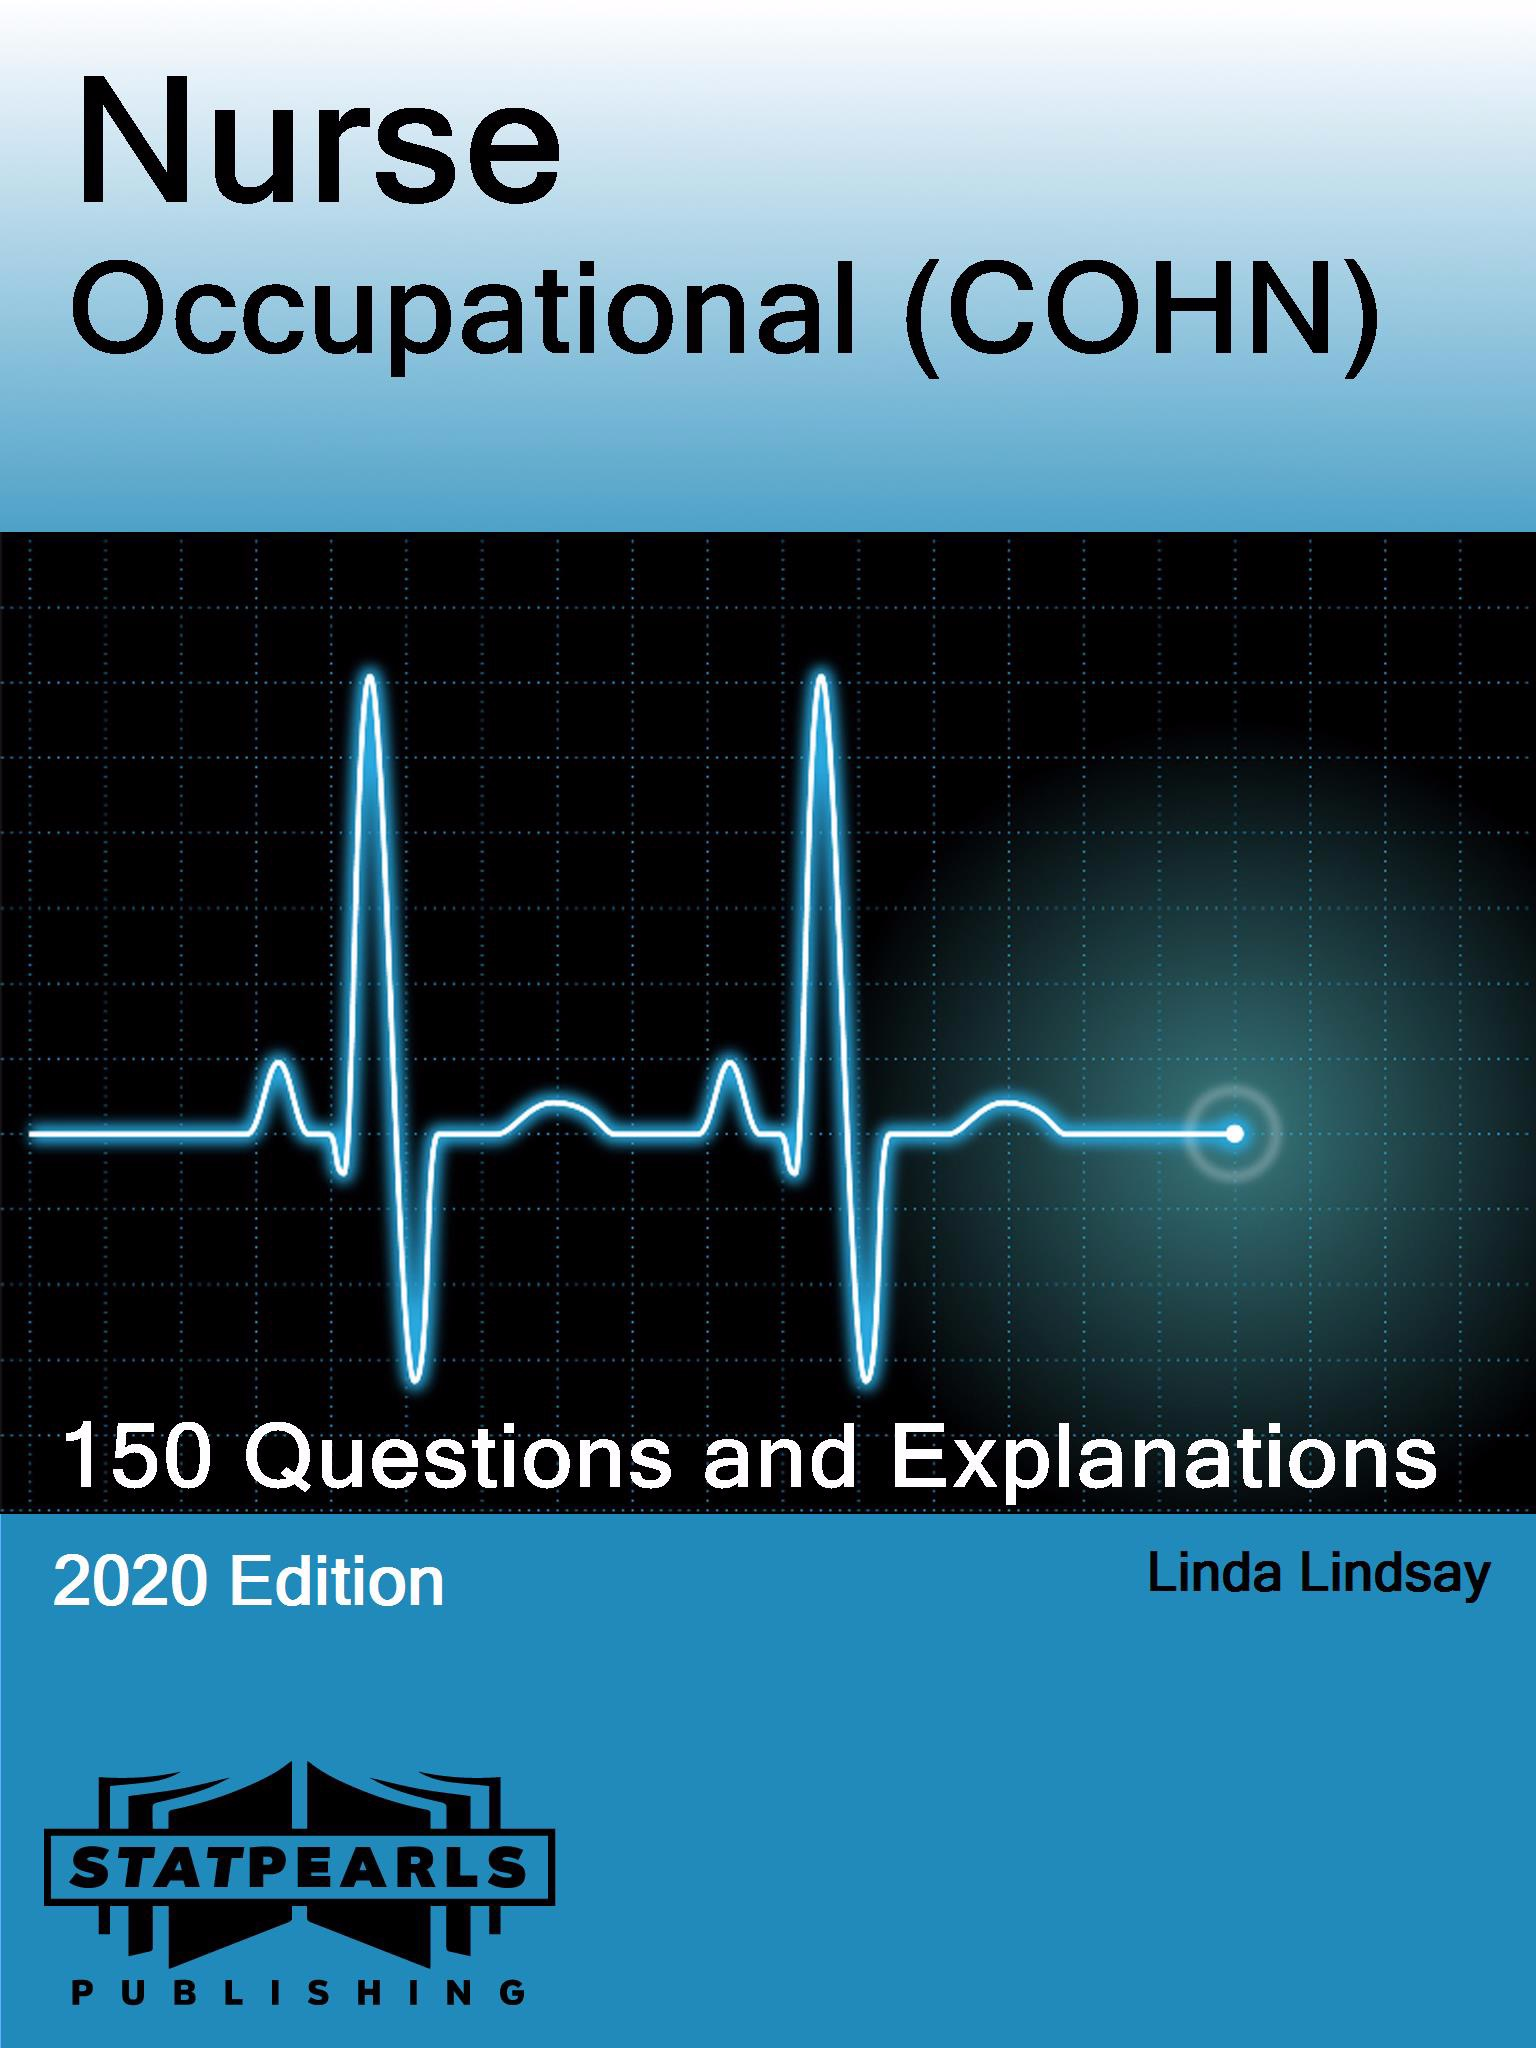 Nurse Occupational (COHN)